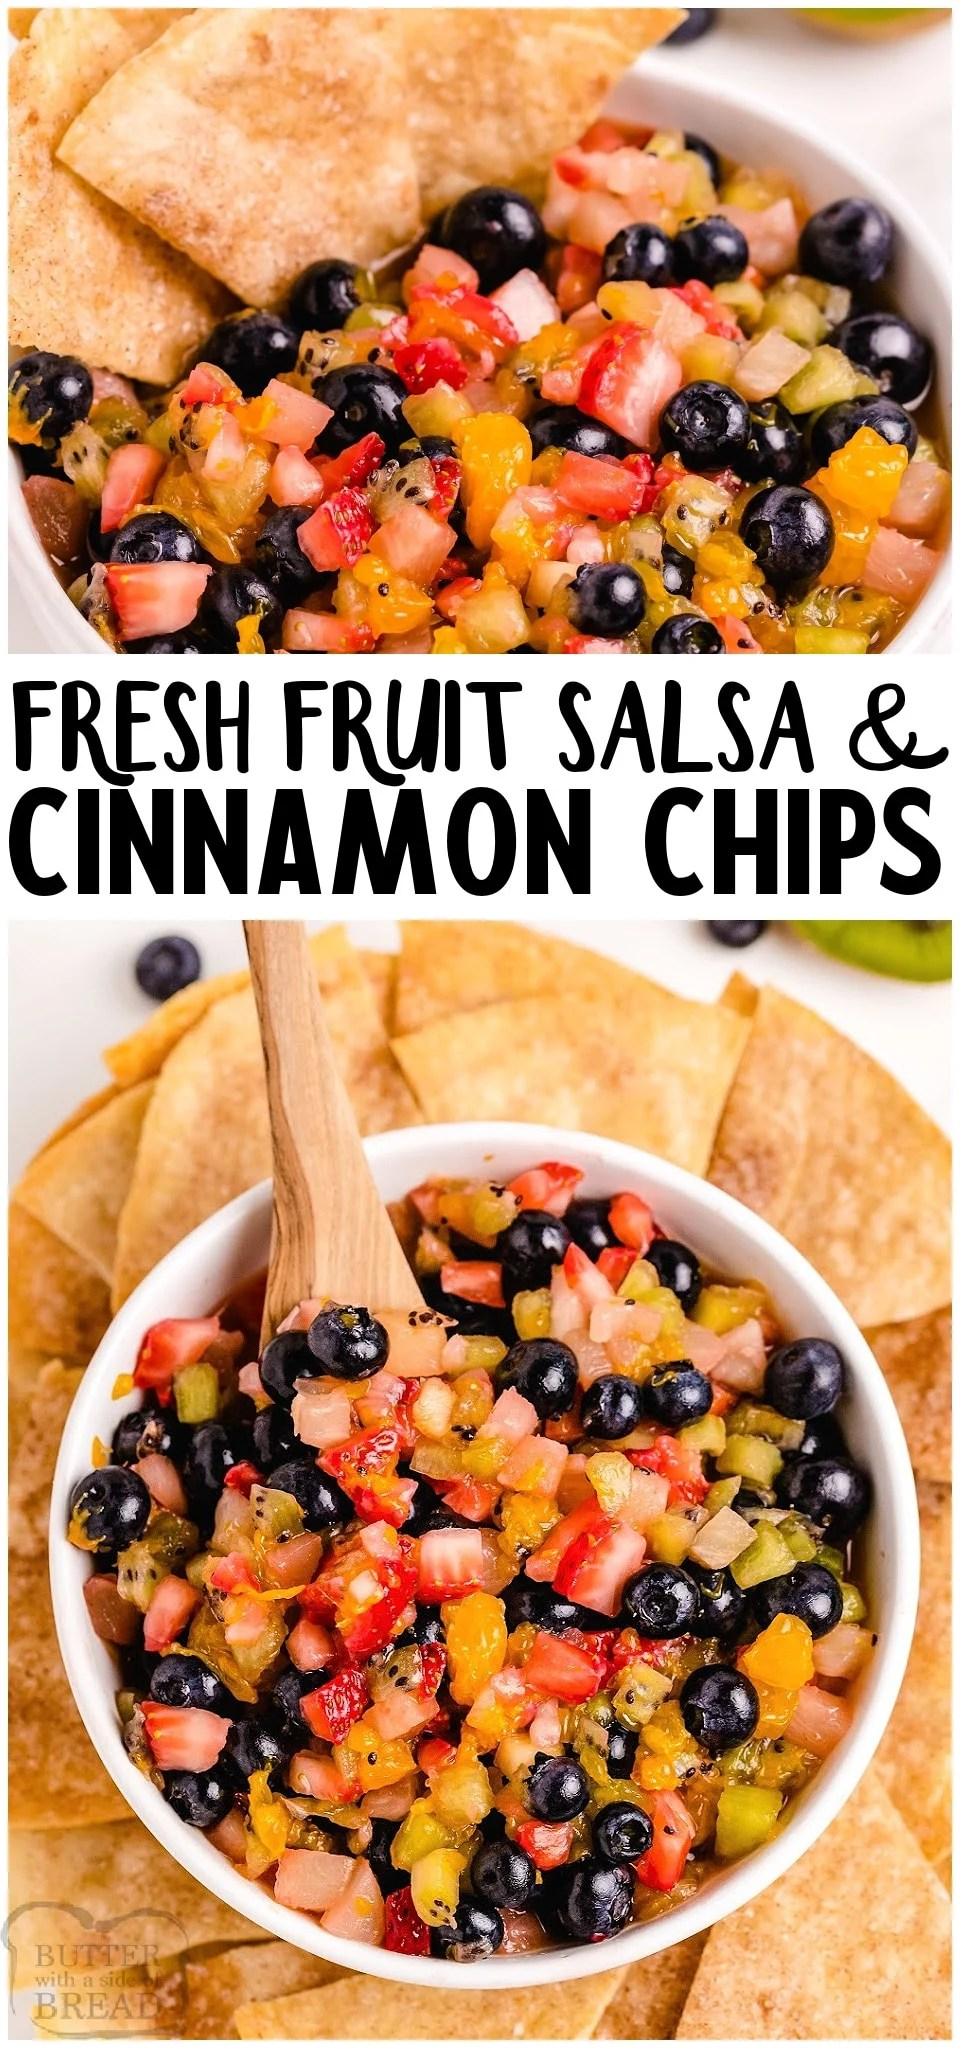 Fresh Fruit Salsa with buttery baked cinnamon chips for a fun & tasty snack or treat! Easy fruit salsa recipe that everyone raves about. It's perfect for any gathering! #fruit #salsa #baked #appetizer #easyrecipe from BUTTER WITH A SIDE OF BREAD